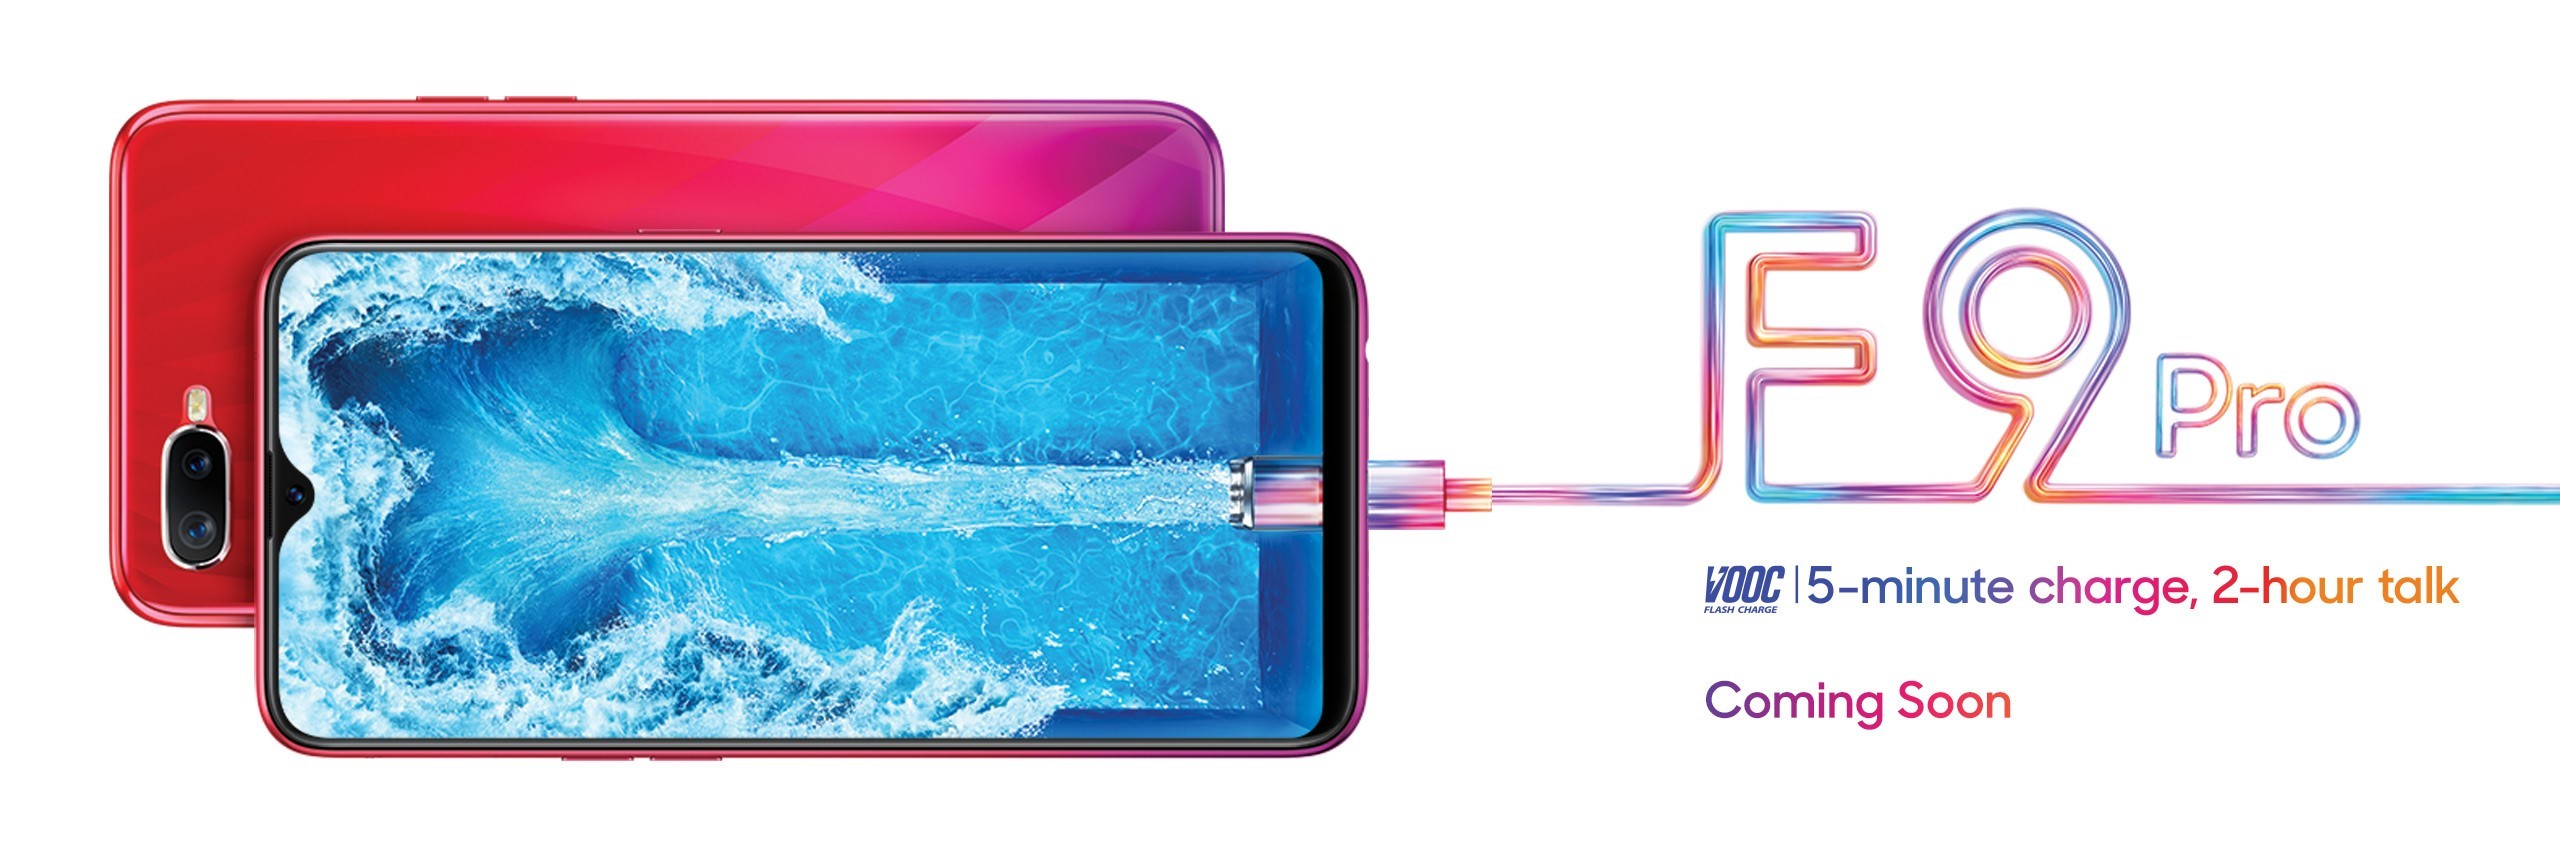 Oppo F9 Pro 2 - OPPO F9 Pro Confirmed - Has VOOC and Triangular Notch